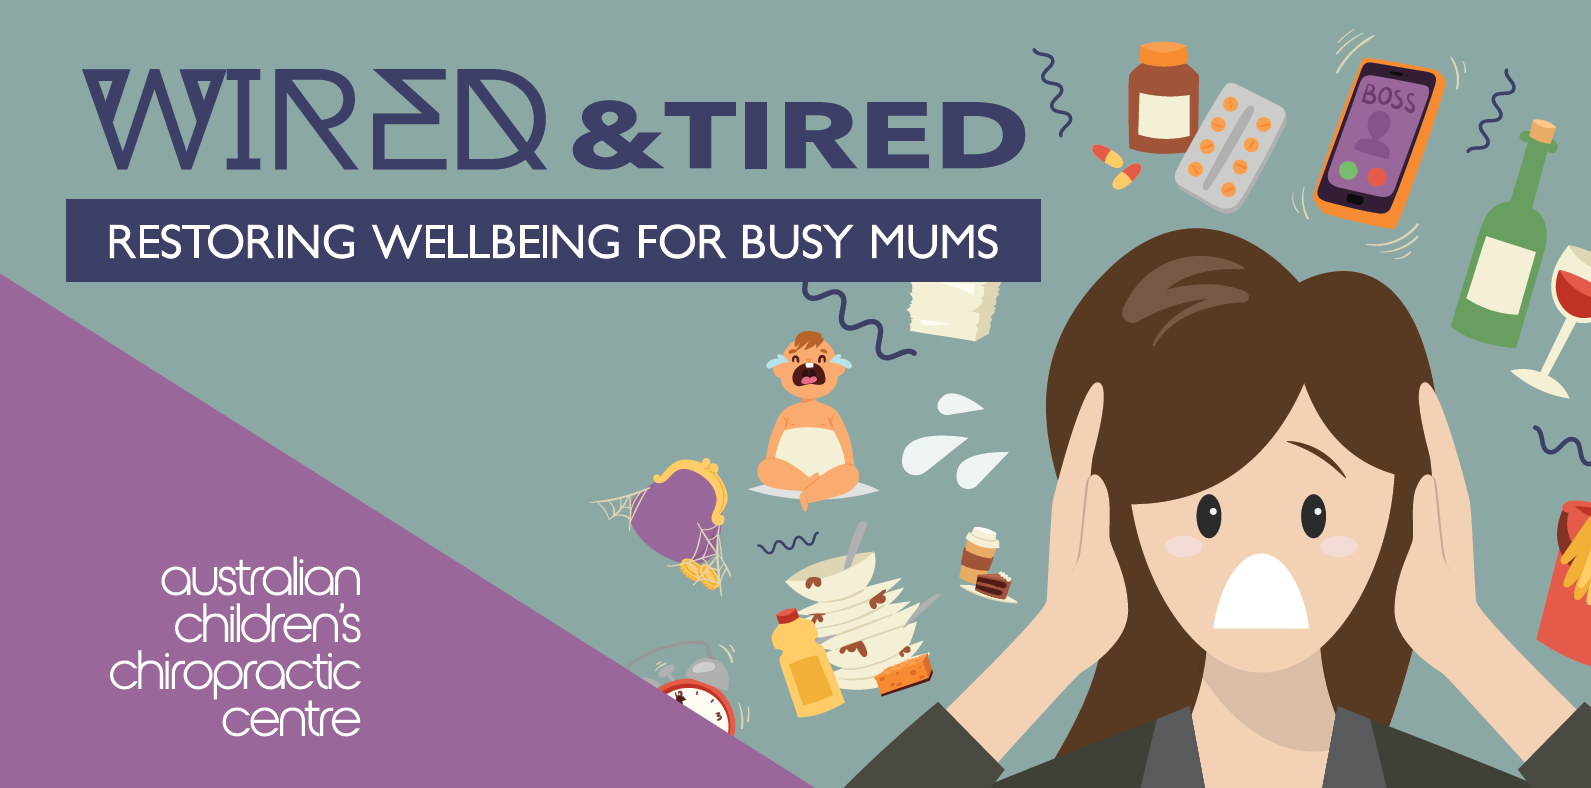 Wired & Tired Event For Busy Mums